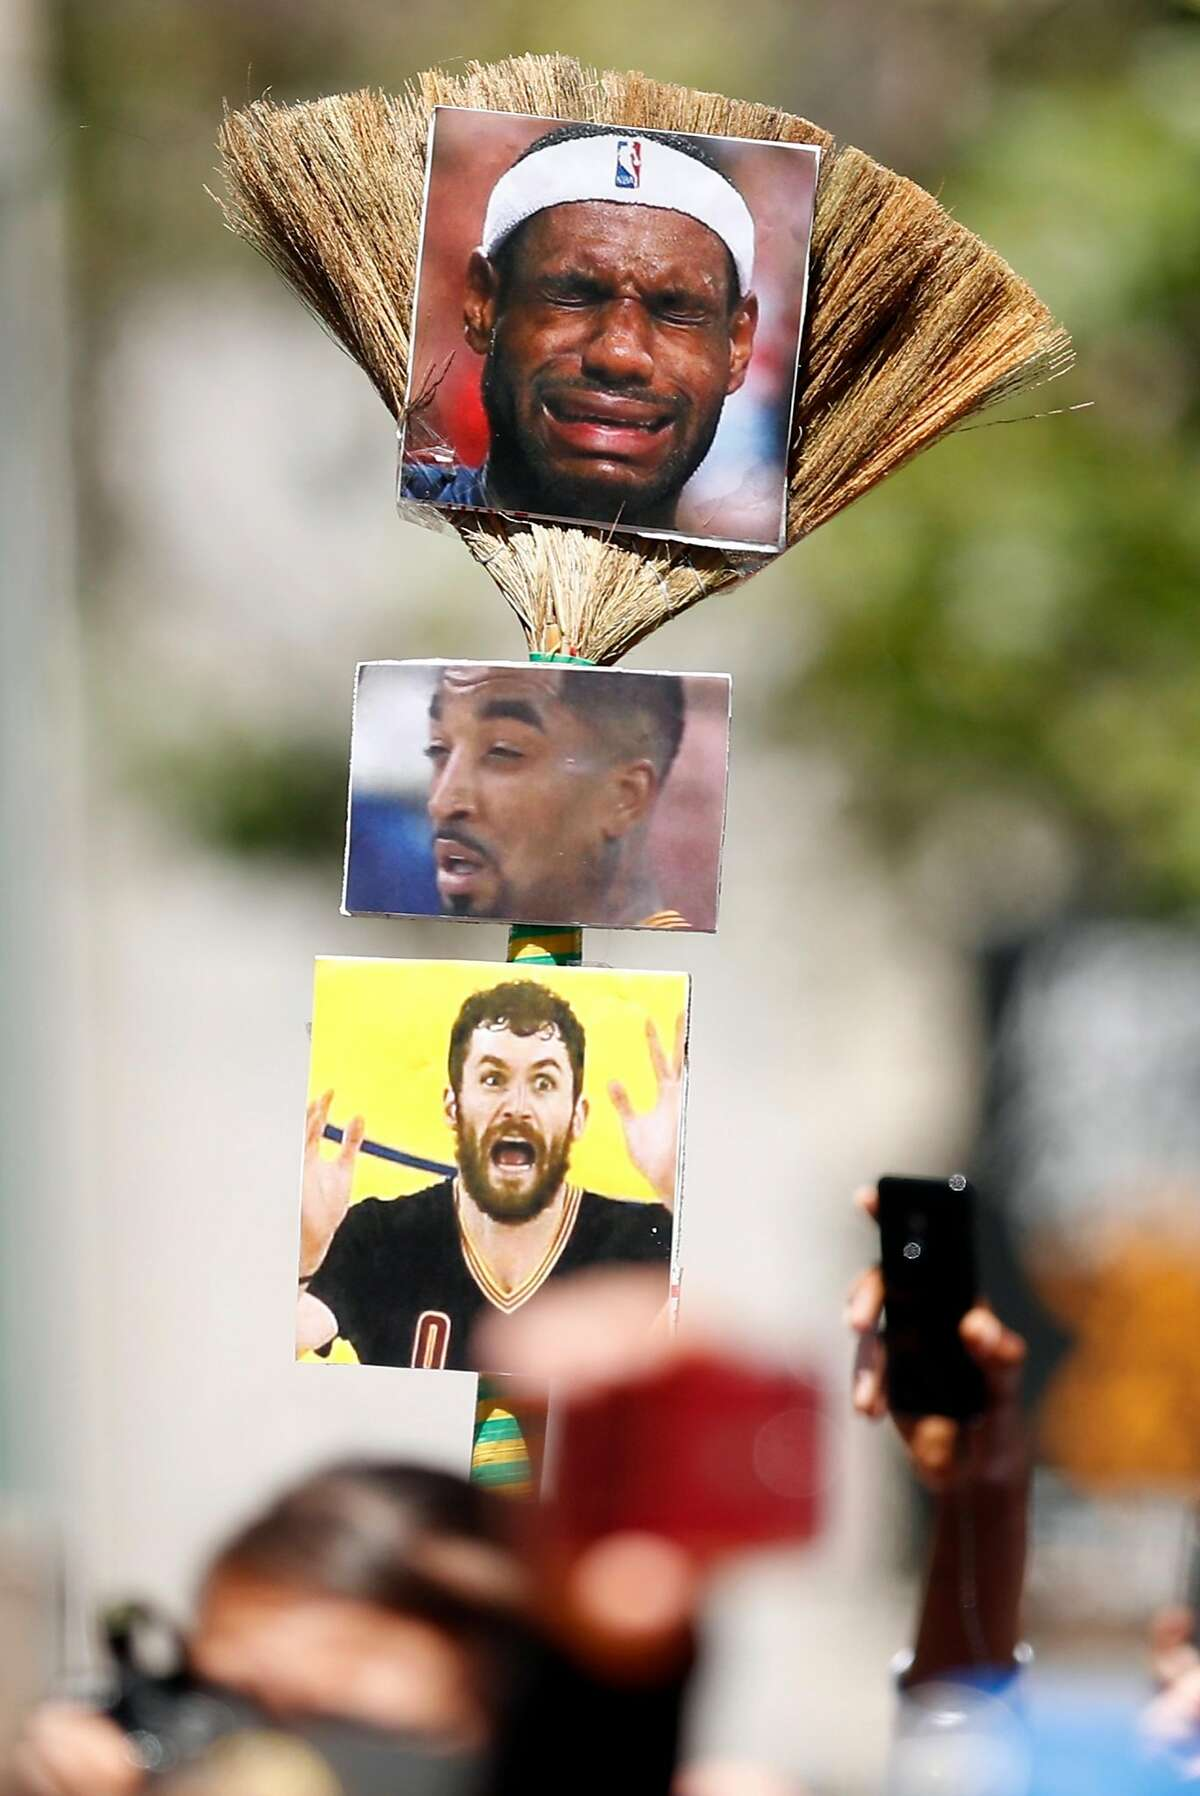 A fan holds a broom with Cleveland Cavaliers' photos during Golden State Warriors' NBA Championship parade in Oakland, CA on Tuesday, June12, 2018.